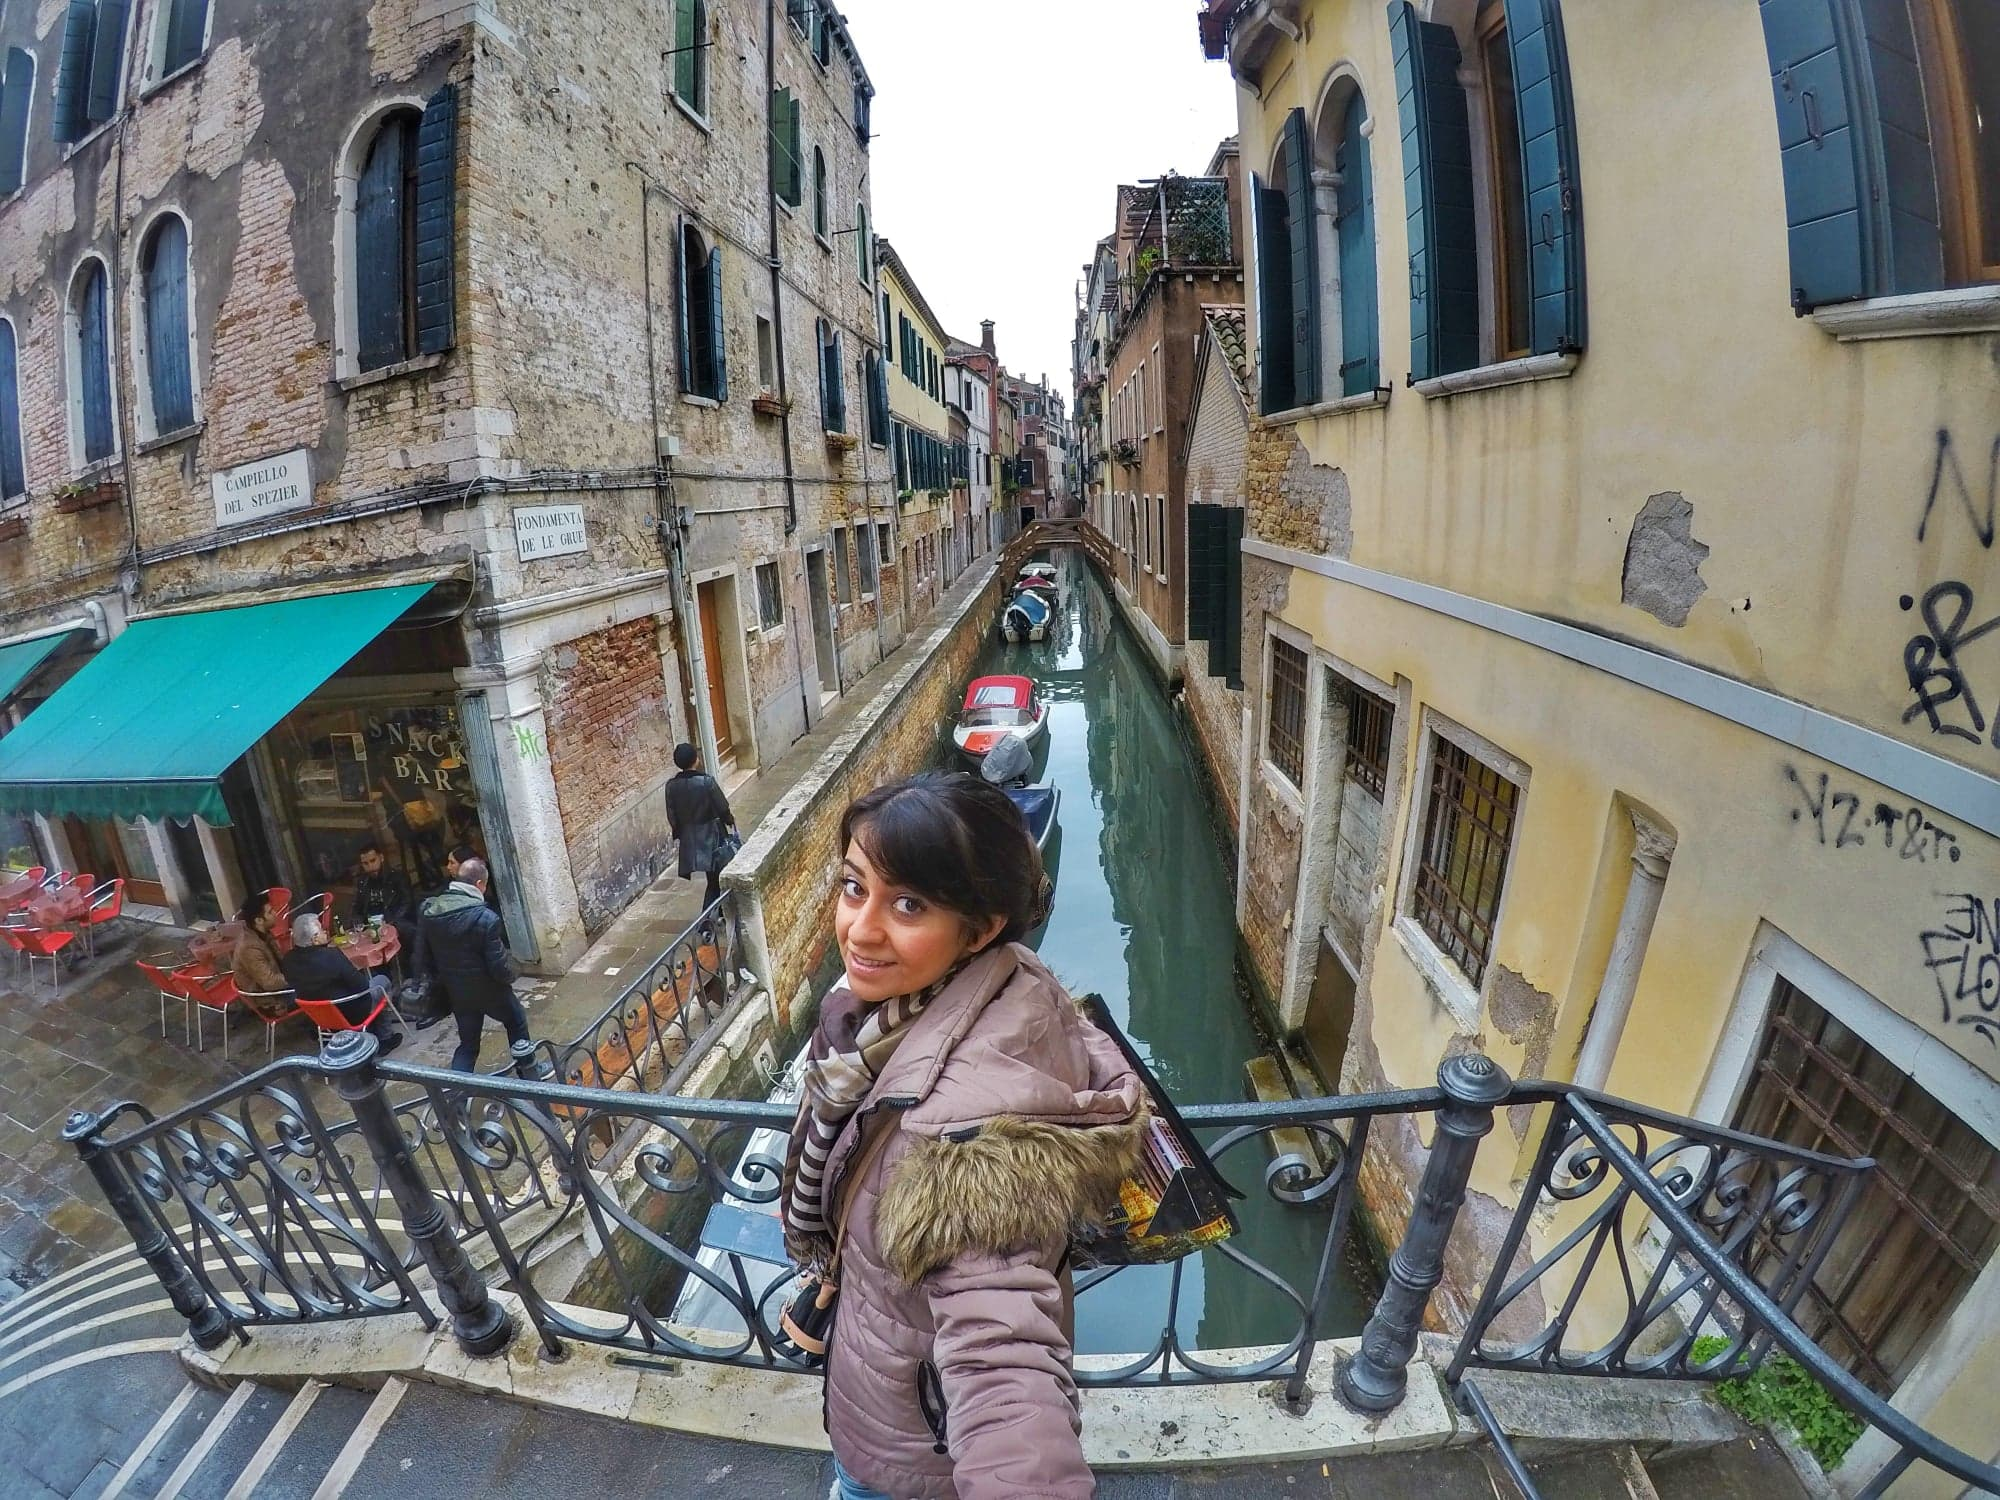 Venice Itinerary 2 days - Roam the alleys and shop